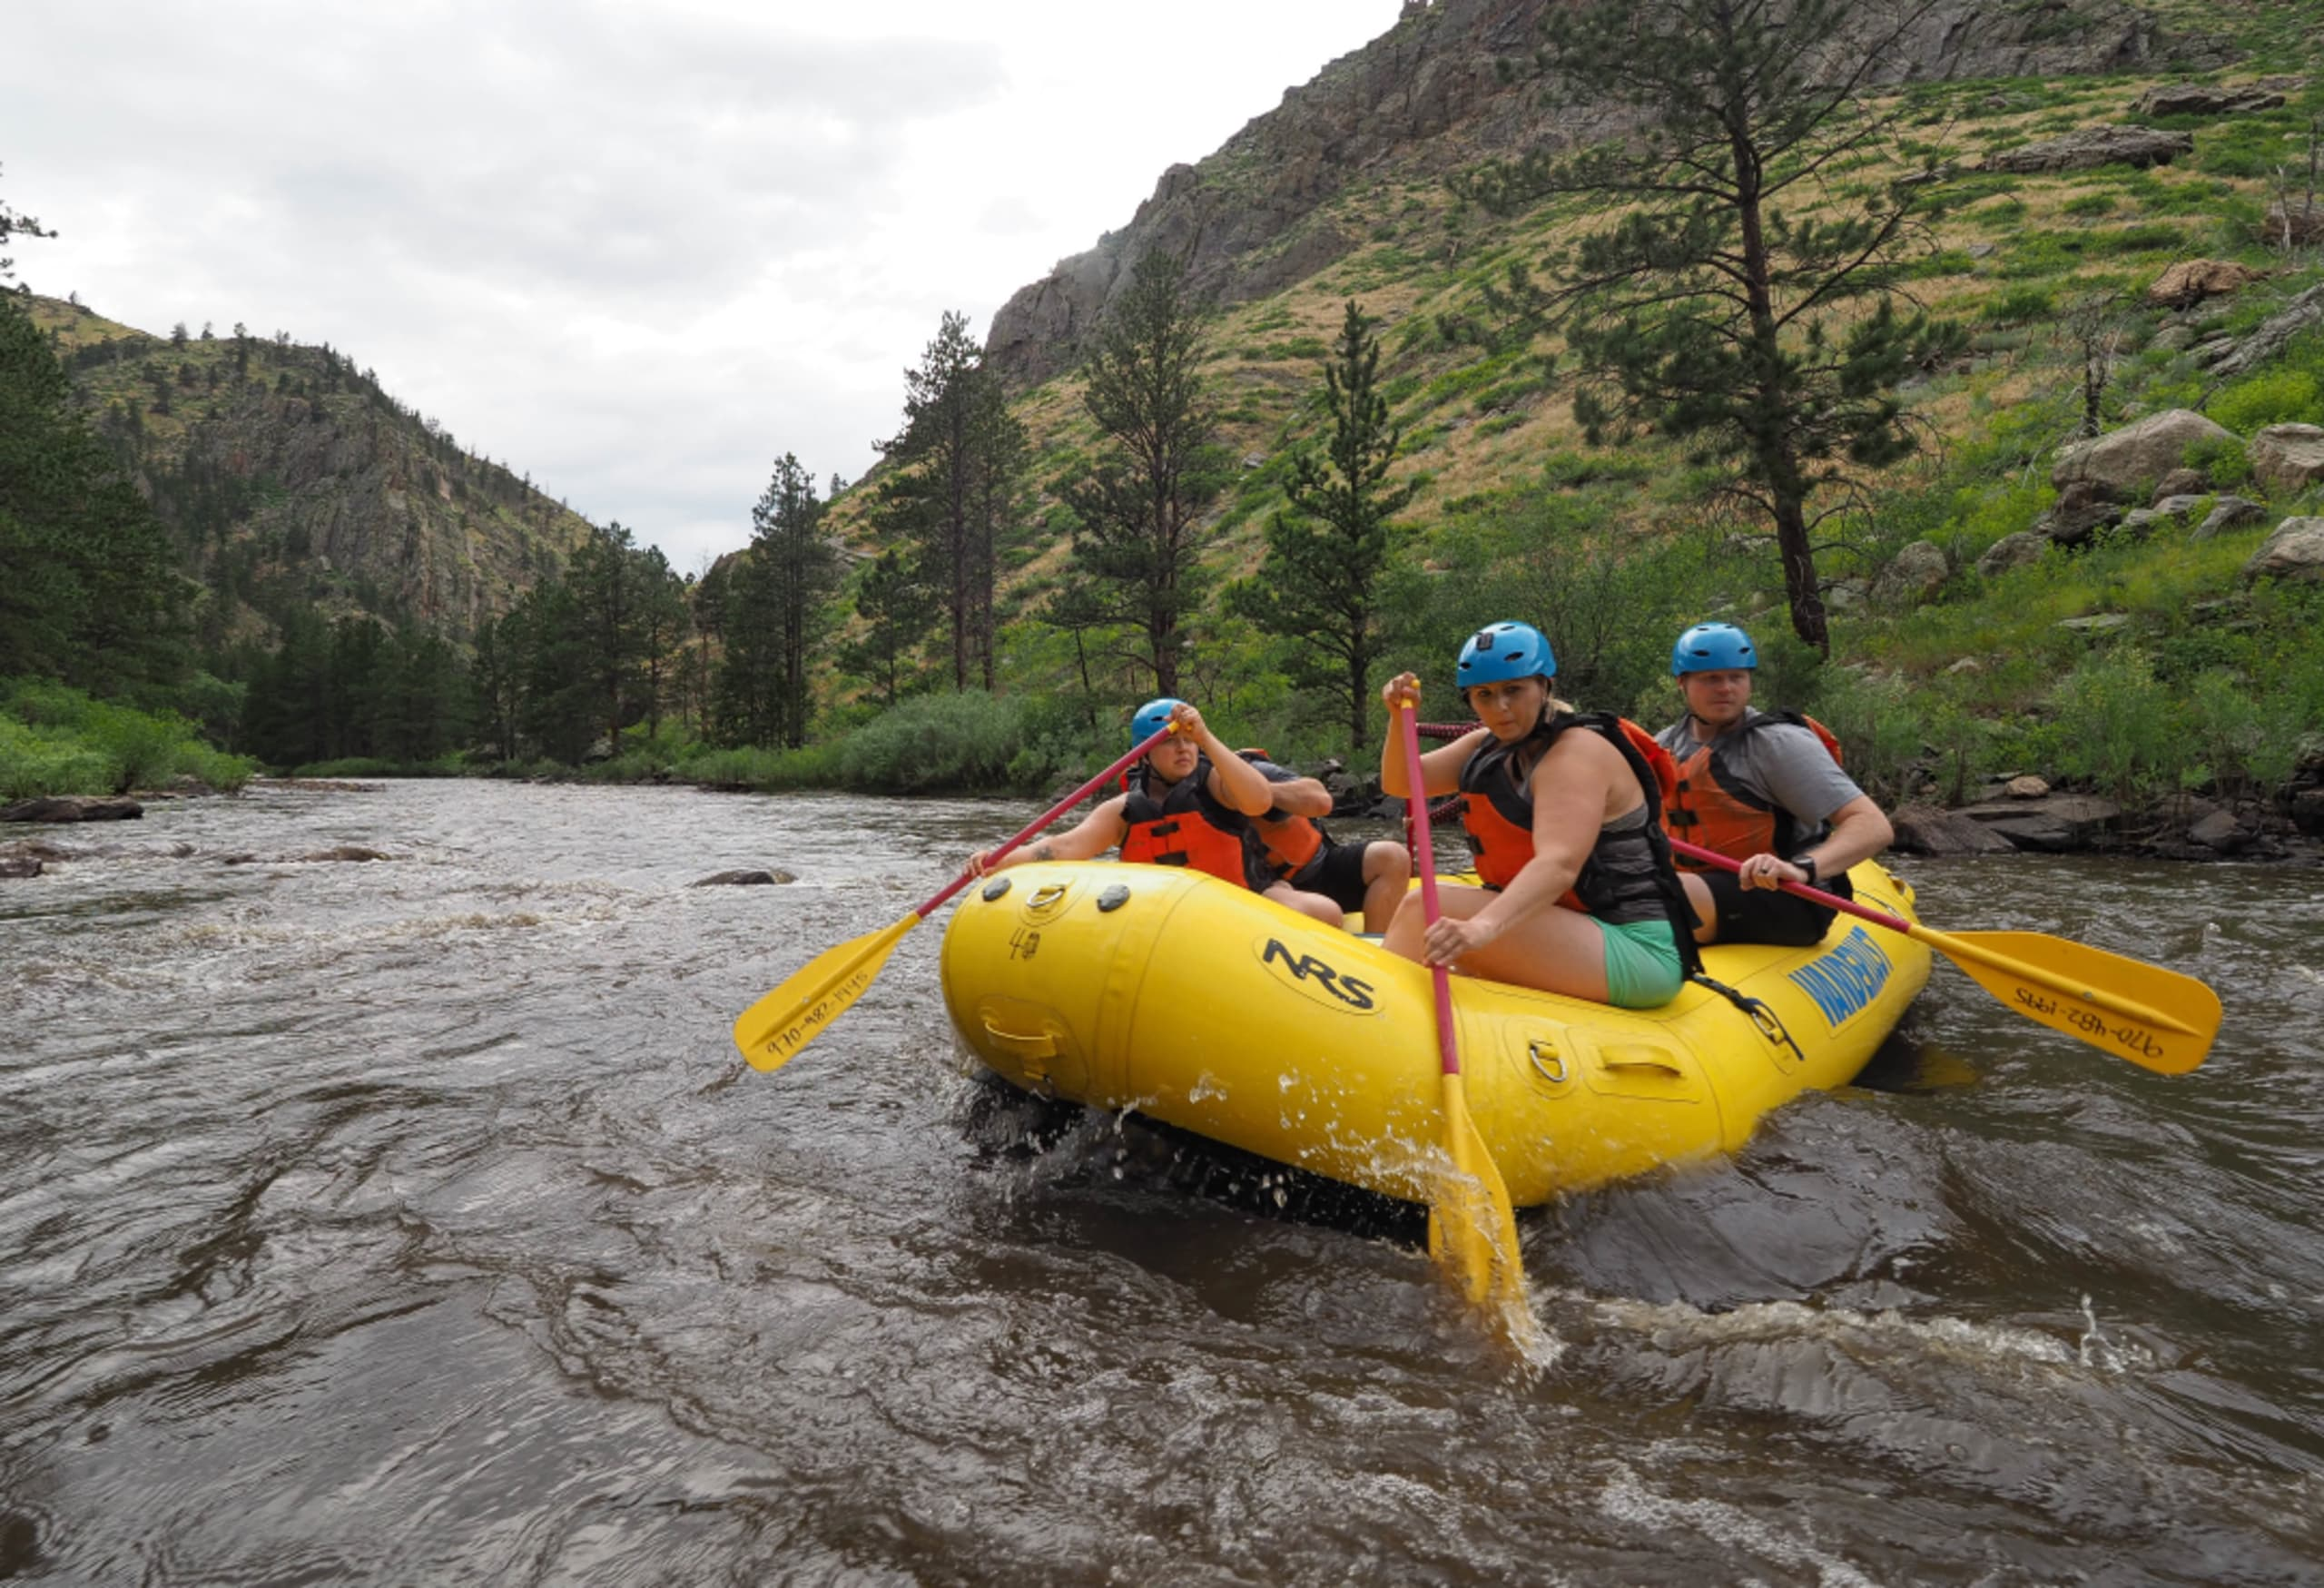 Fort Collins: Paddling, Hiking and Biking, Oh My